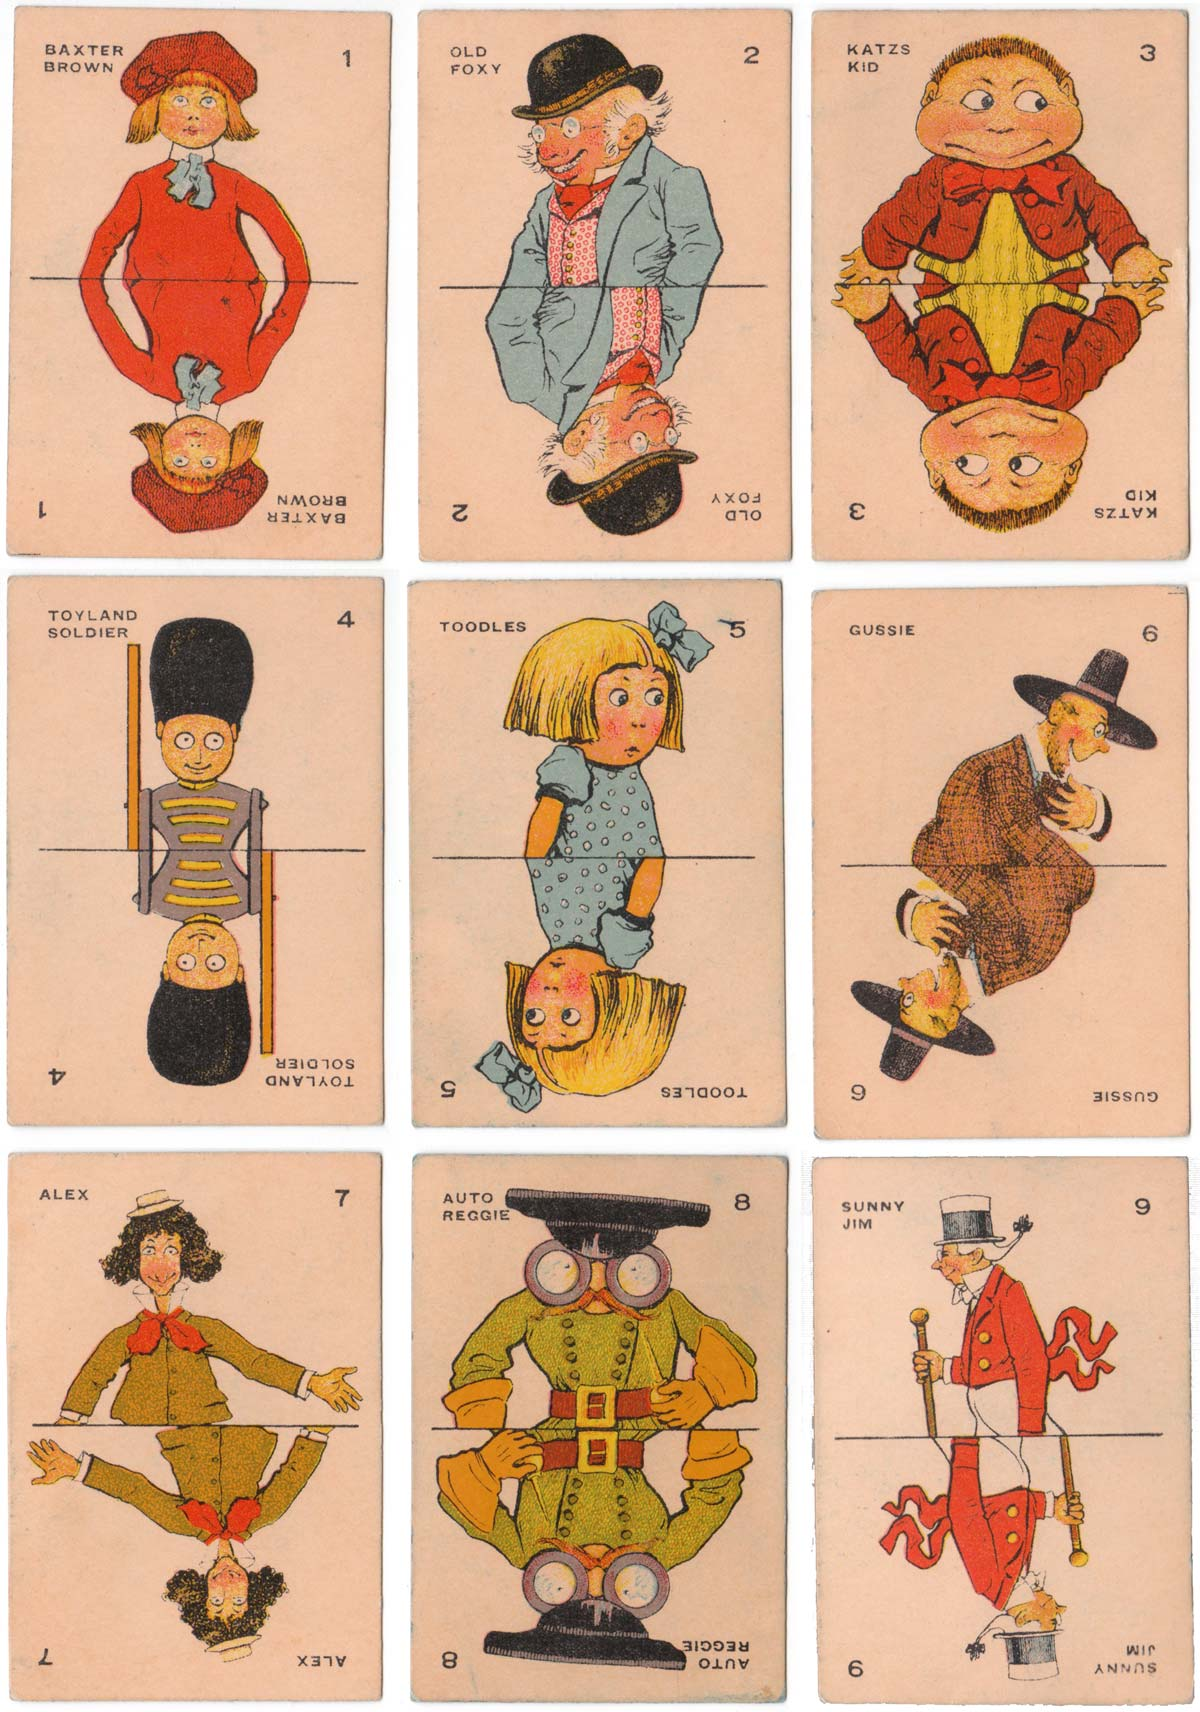 Milton Bradley 'Old Maid' card game, c.1920s